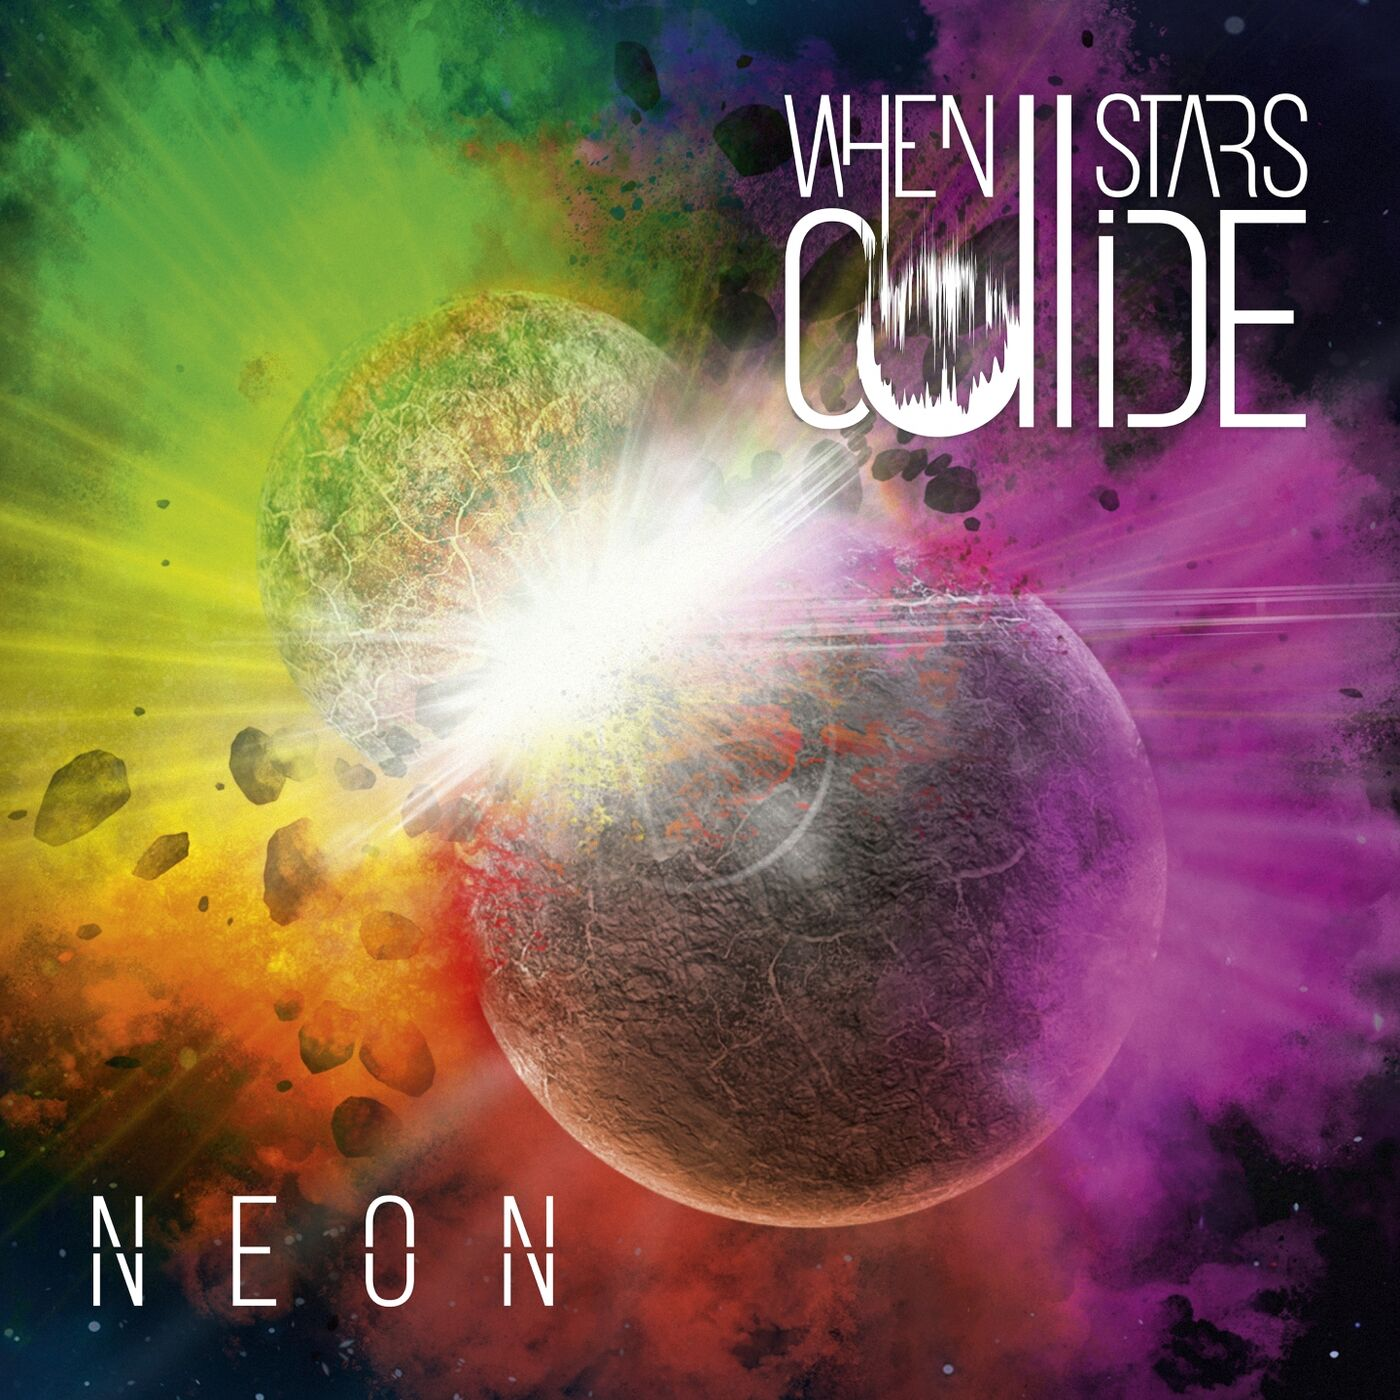 When Stars Collide - Neon [single] (2017)